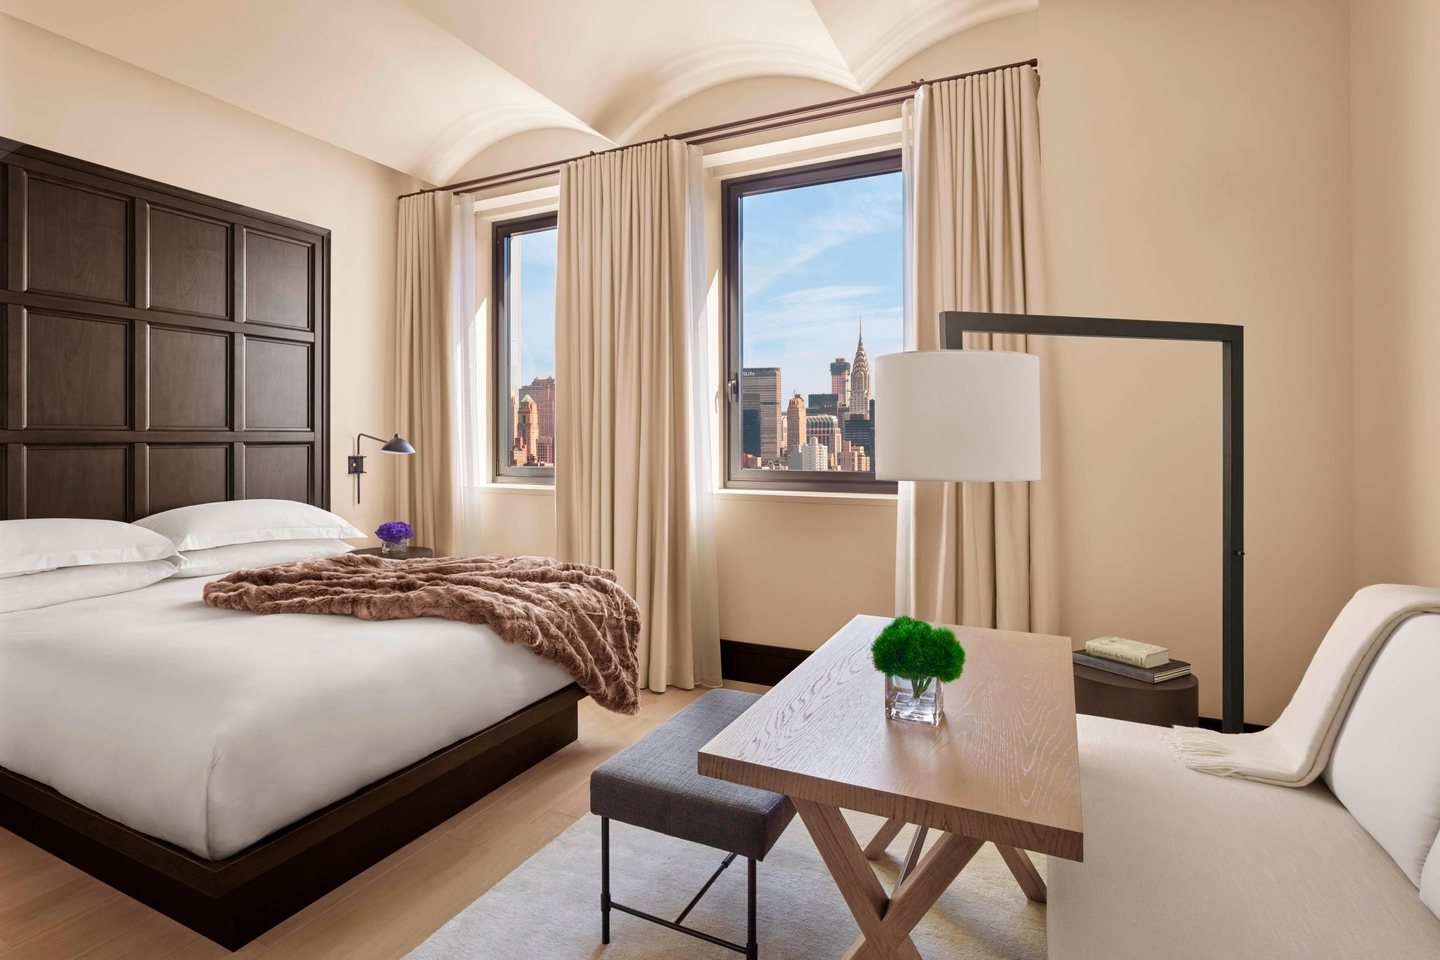 Best Marriott Category 7 Hotels & Resorts in United States